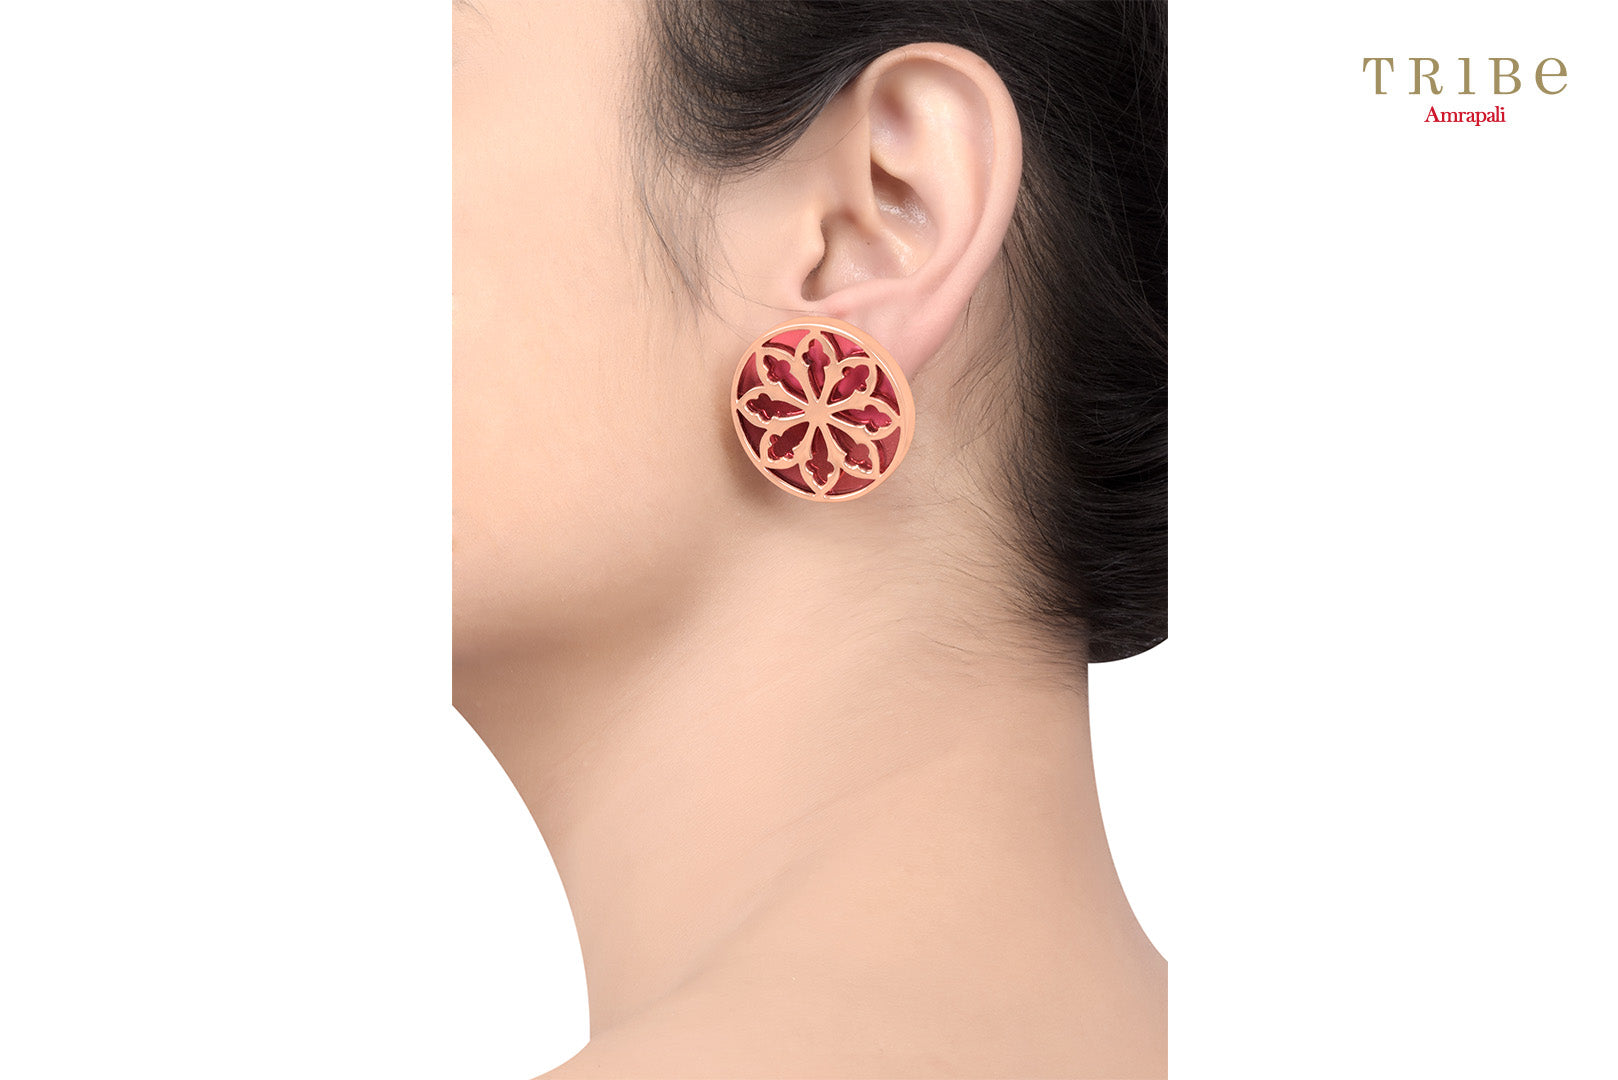 Elegant silver rose gold plated rosette window earrings buy online in USA. The simple earrings are perfect to add a spark to your everyday Indian look. If you want to shop such ethnic Indian jewelry in USA, then look no further than Pure Elegance exclusive fashion store or shop online.-ear view